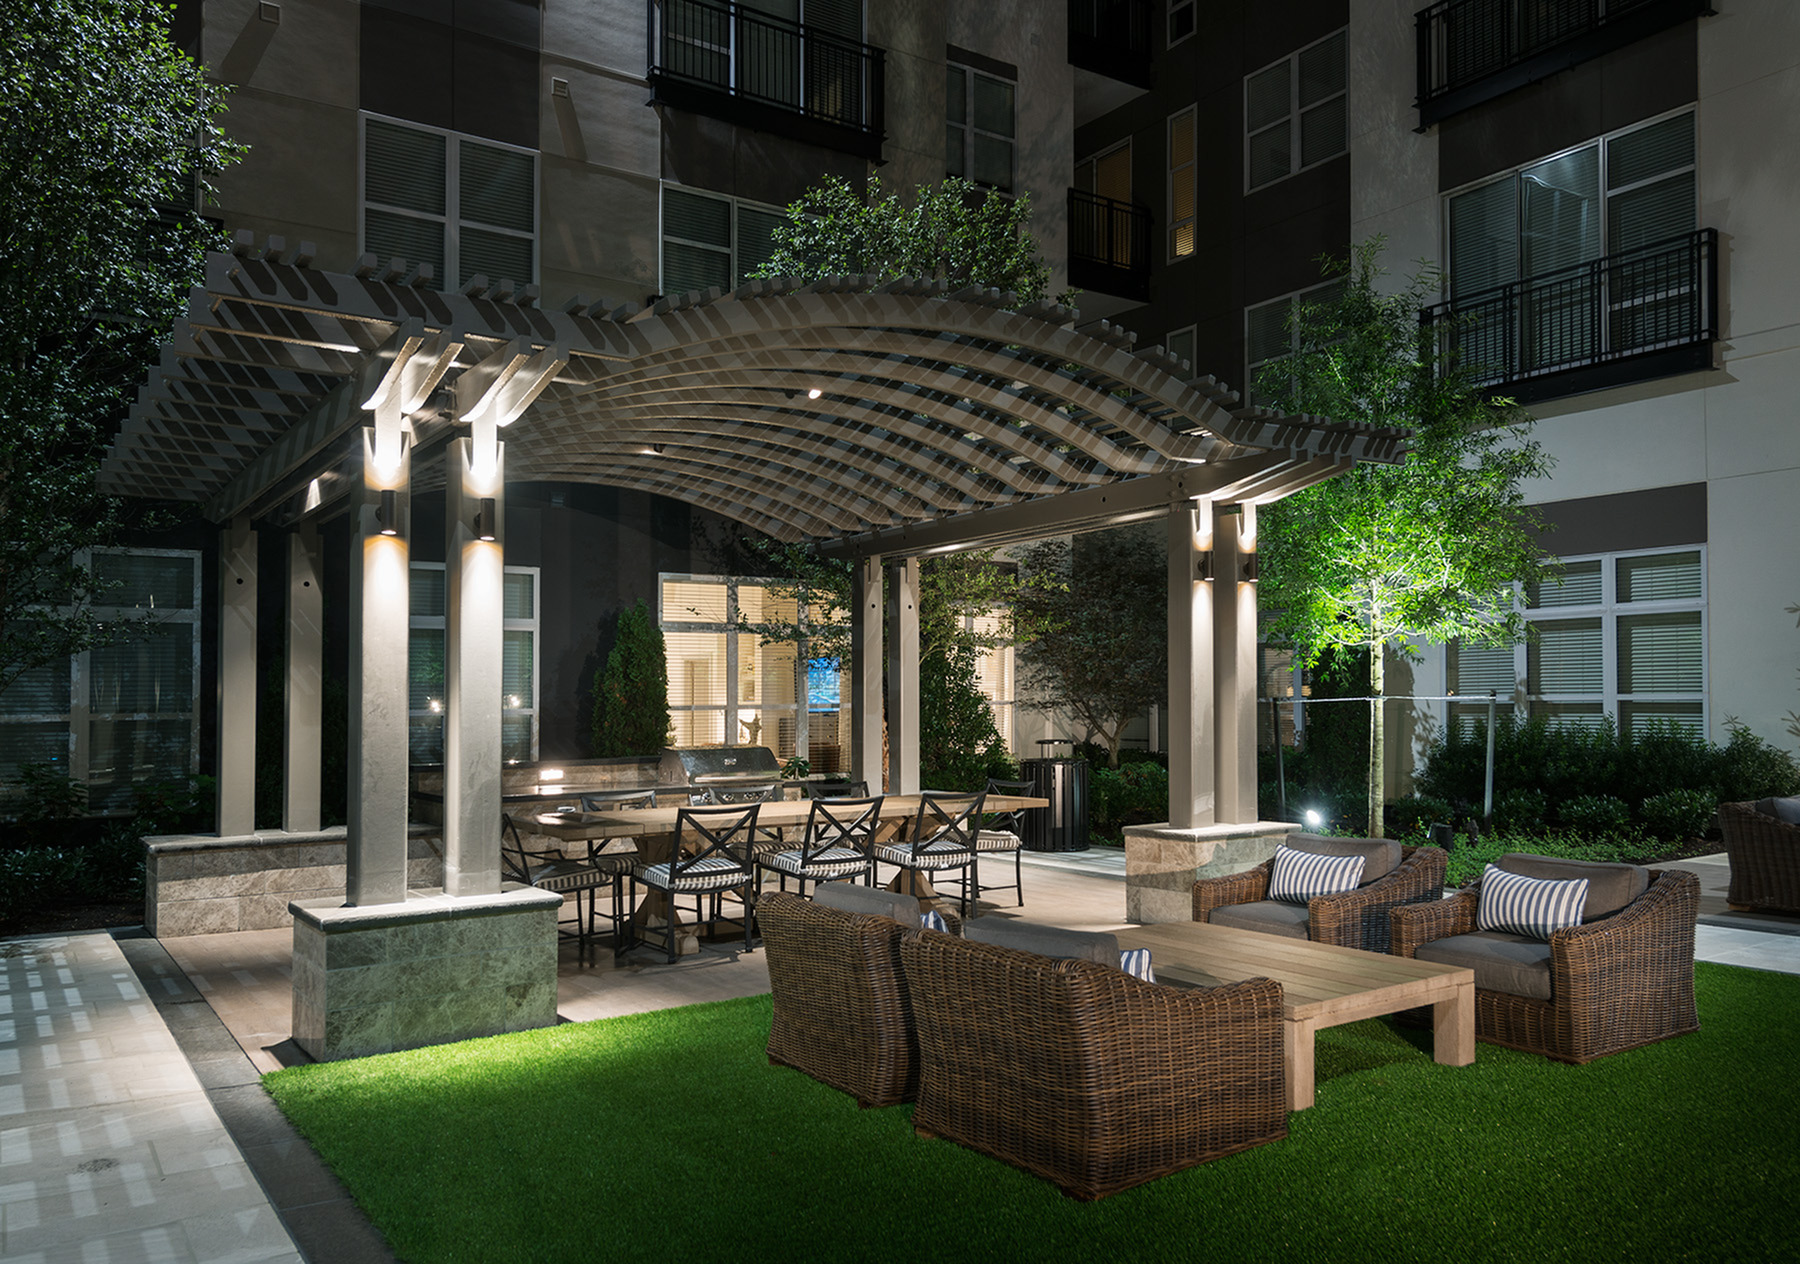 Image of Lush landscaping, grilling and dining areas with social spaces for gathering for Hanover Cross Street